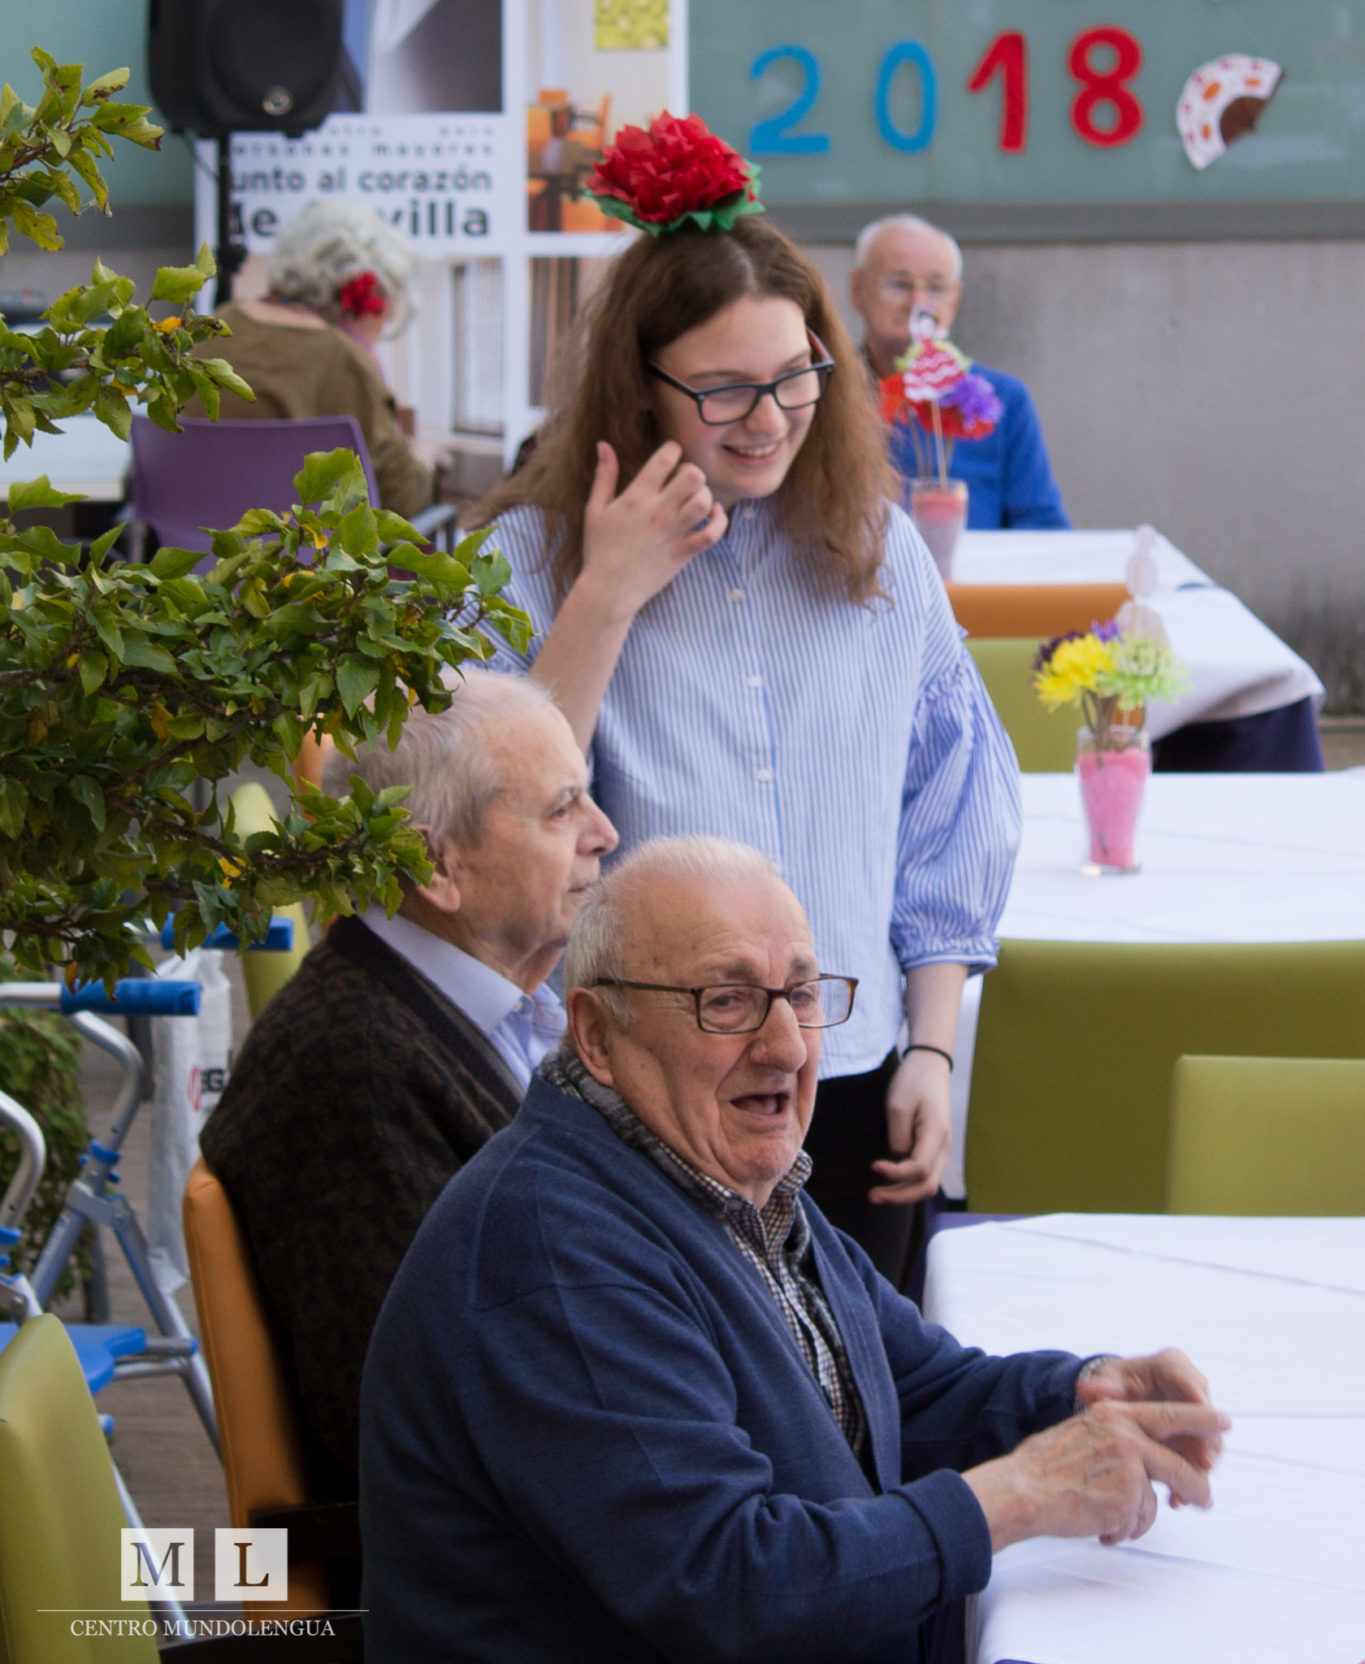 Volunteering with Pensioners